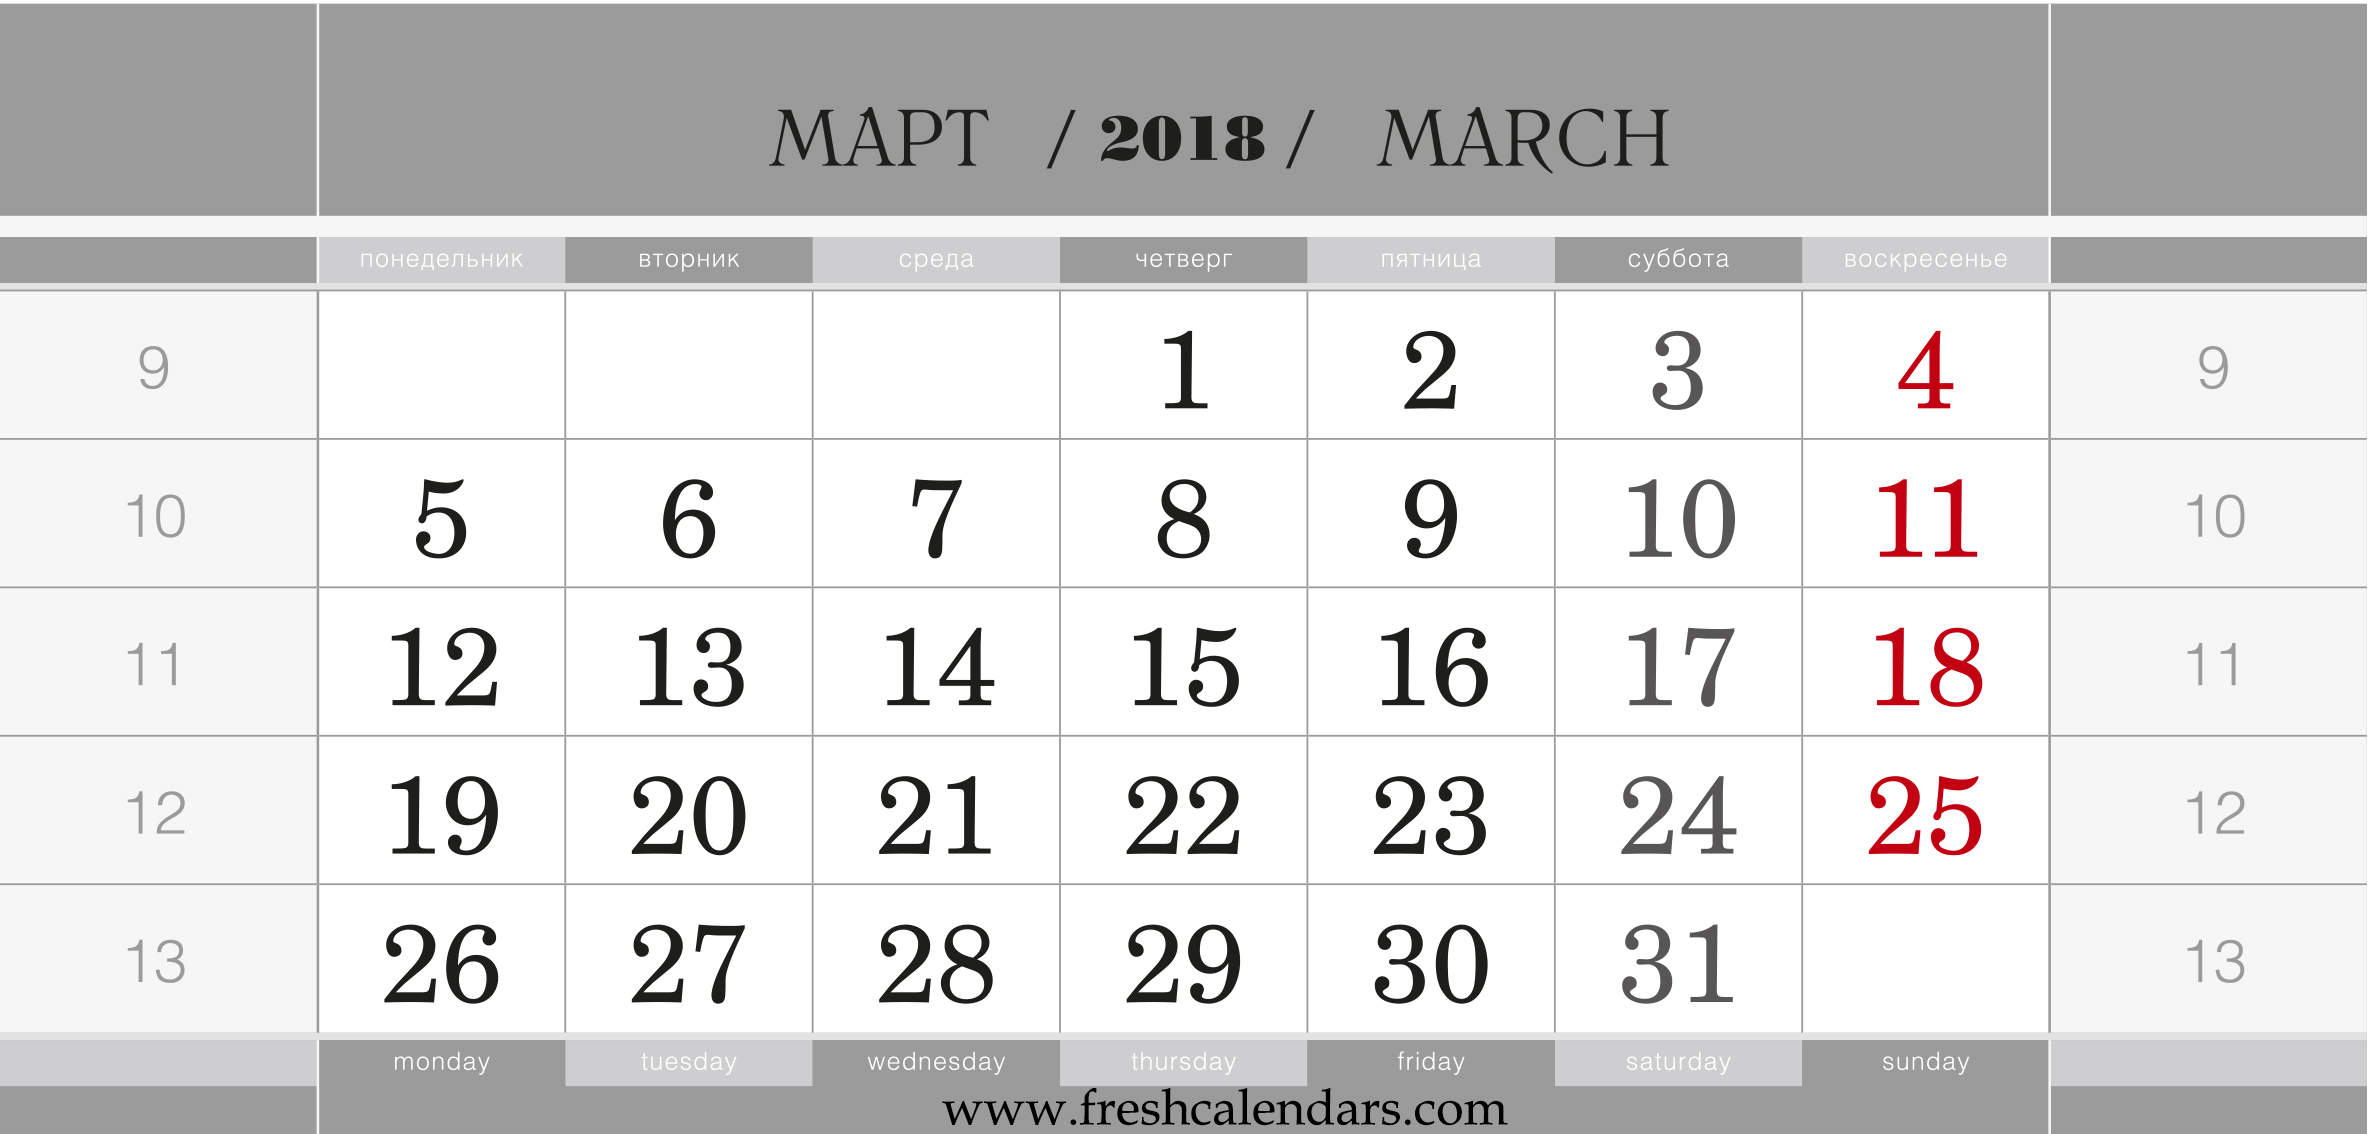 March 2018 Russian and English Calendar